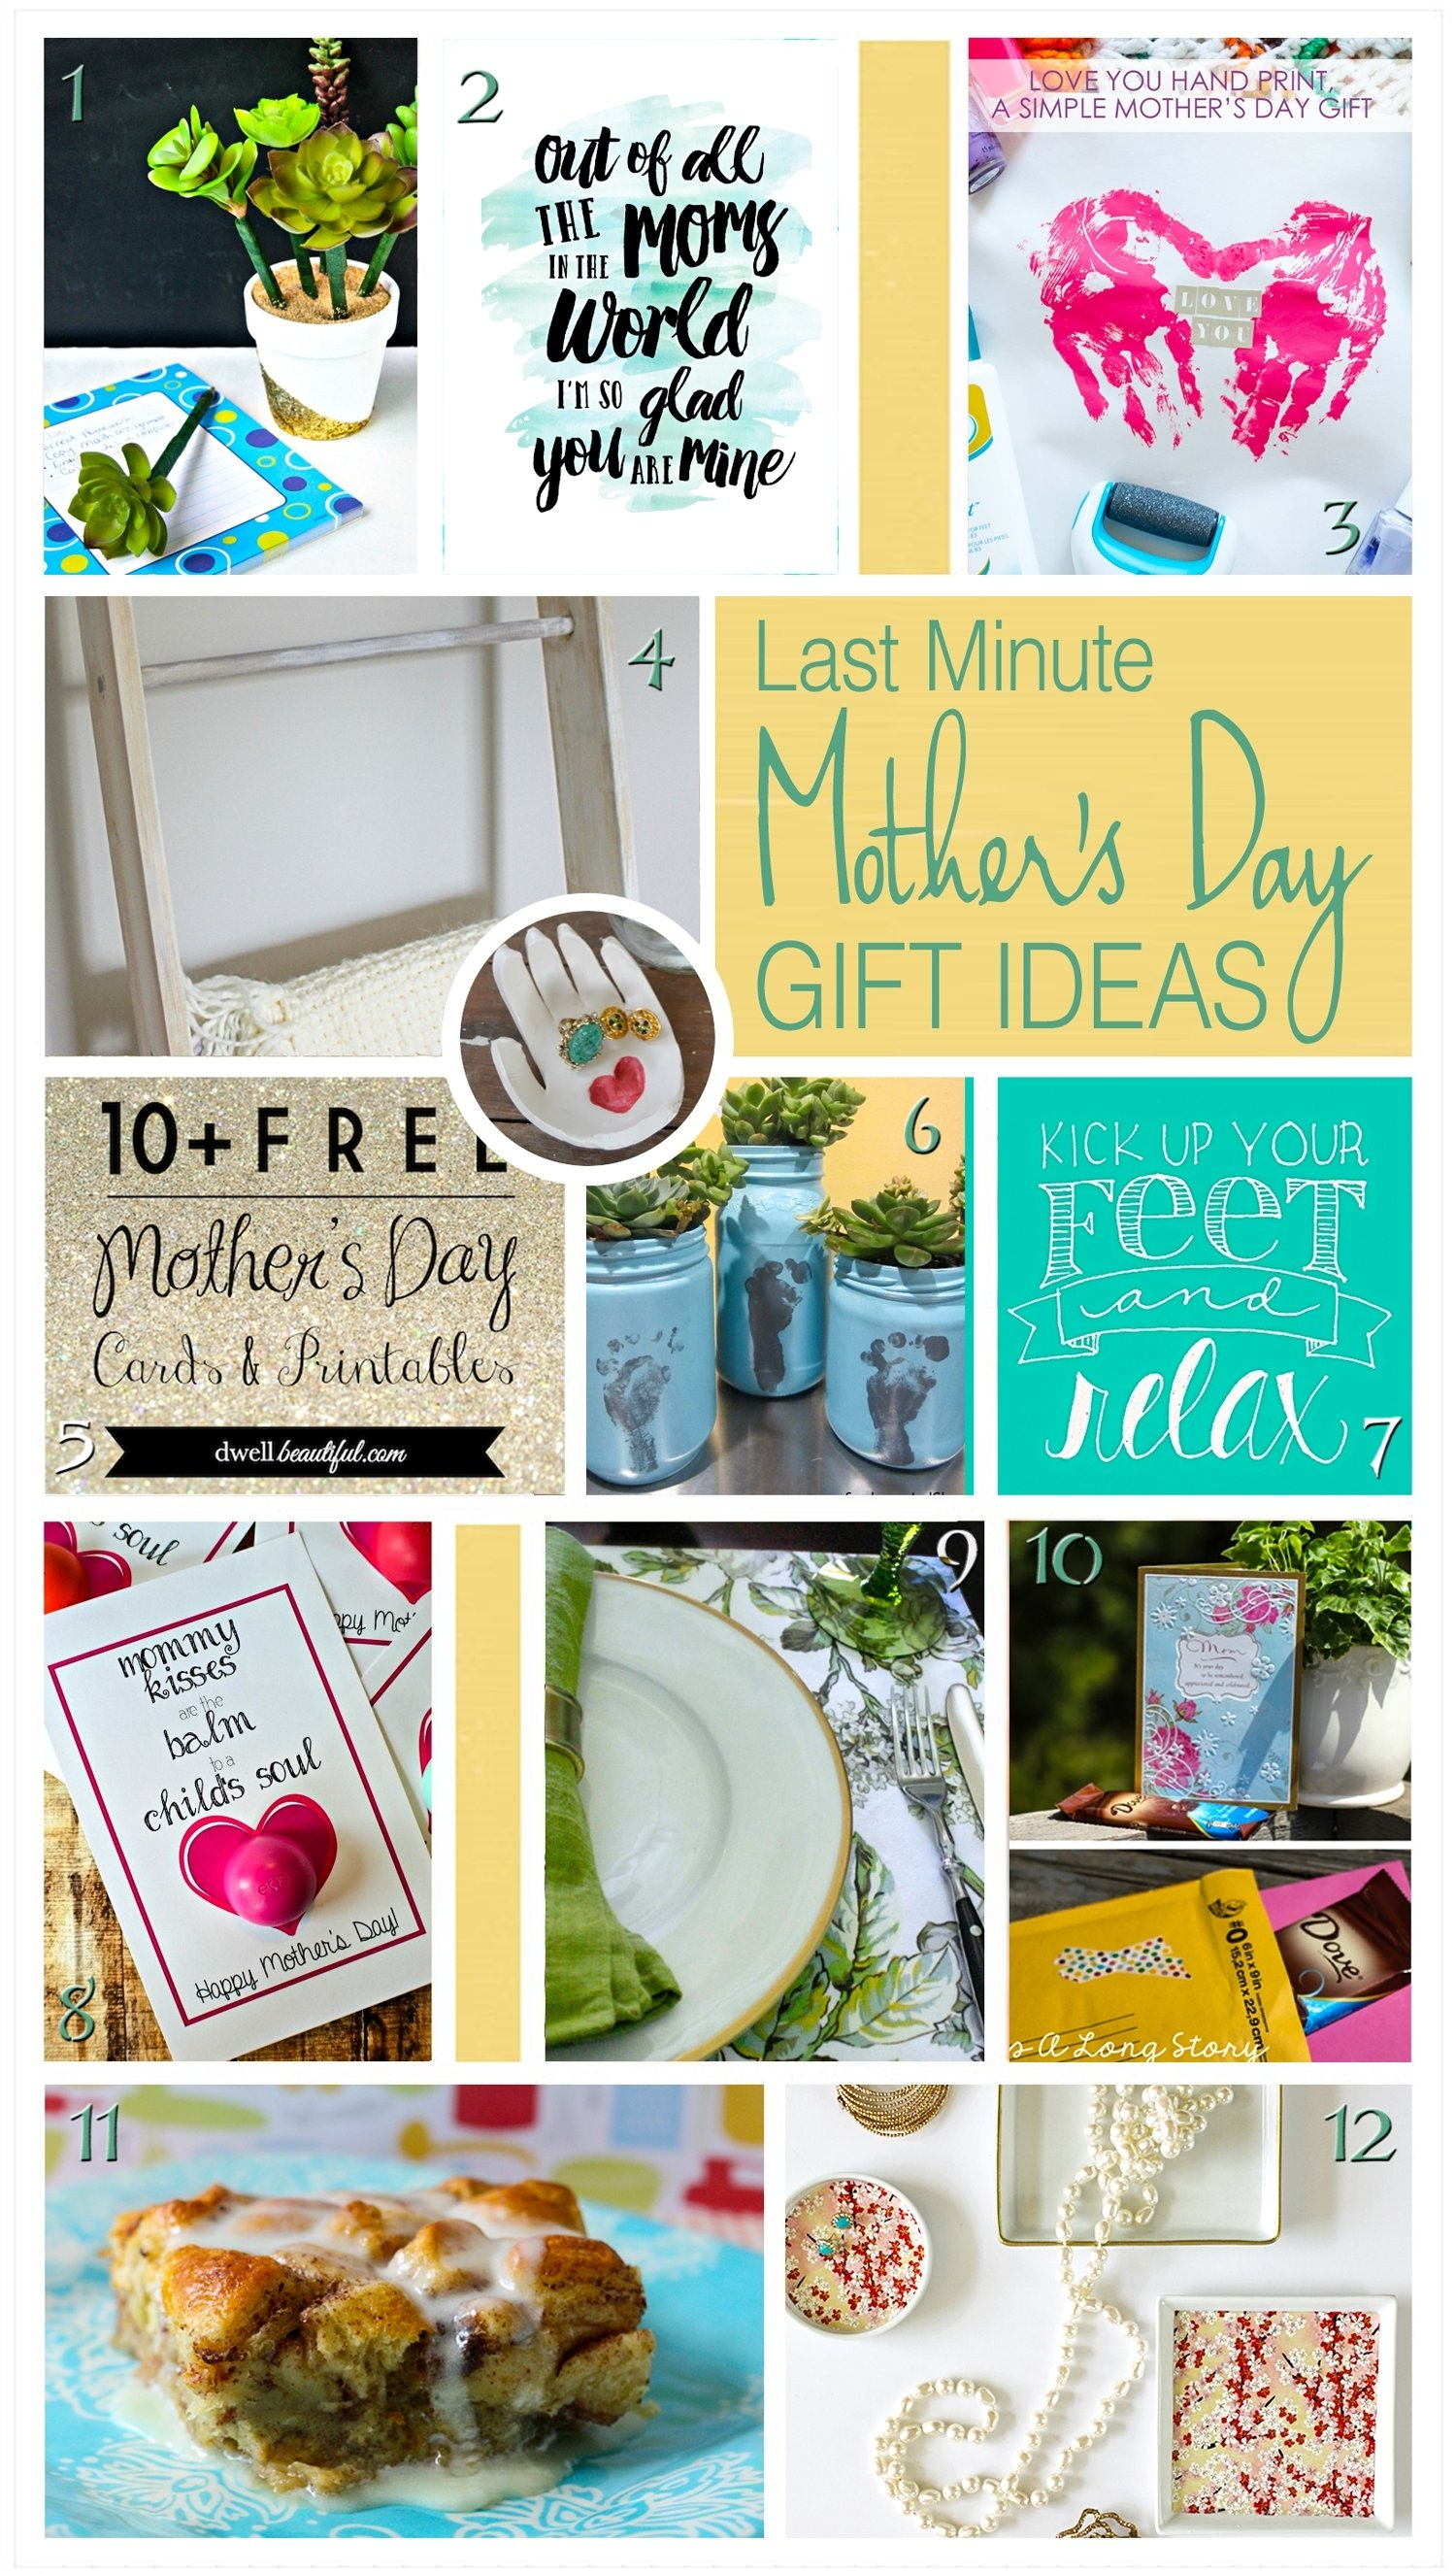 10 Famous Last Minute Gift Ideas For Mom wayfair housewarming party last minute mothers day gifts 3 2021